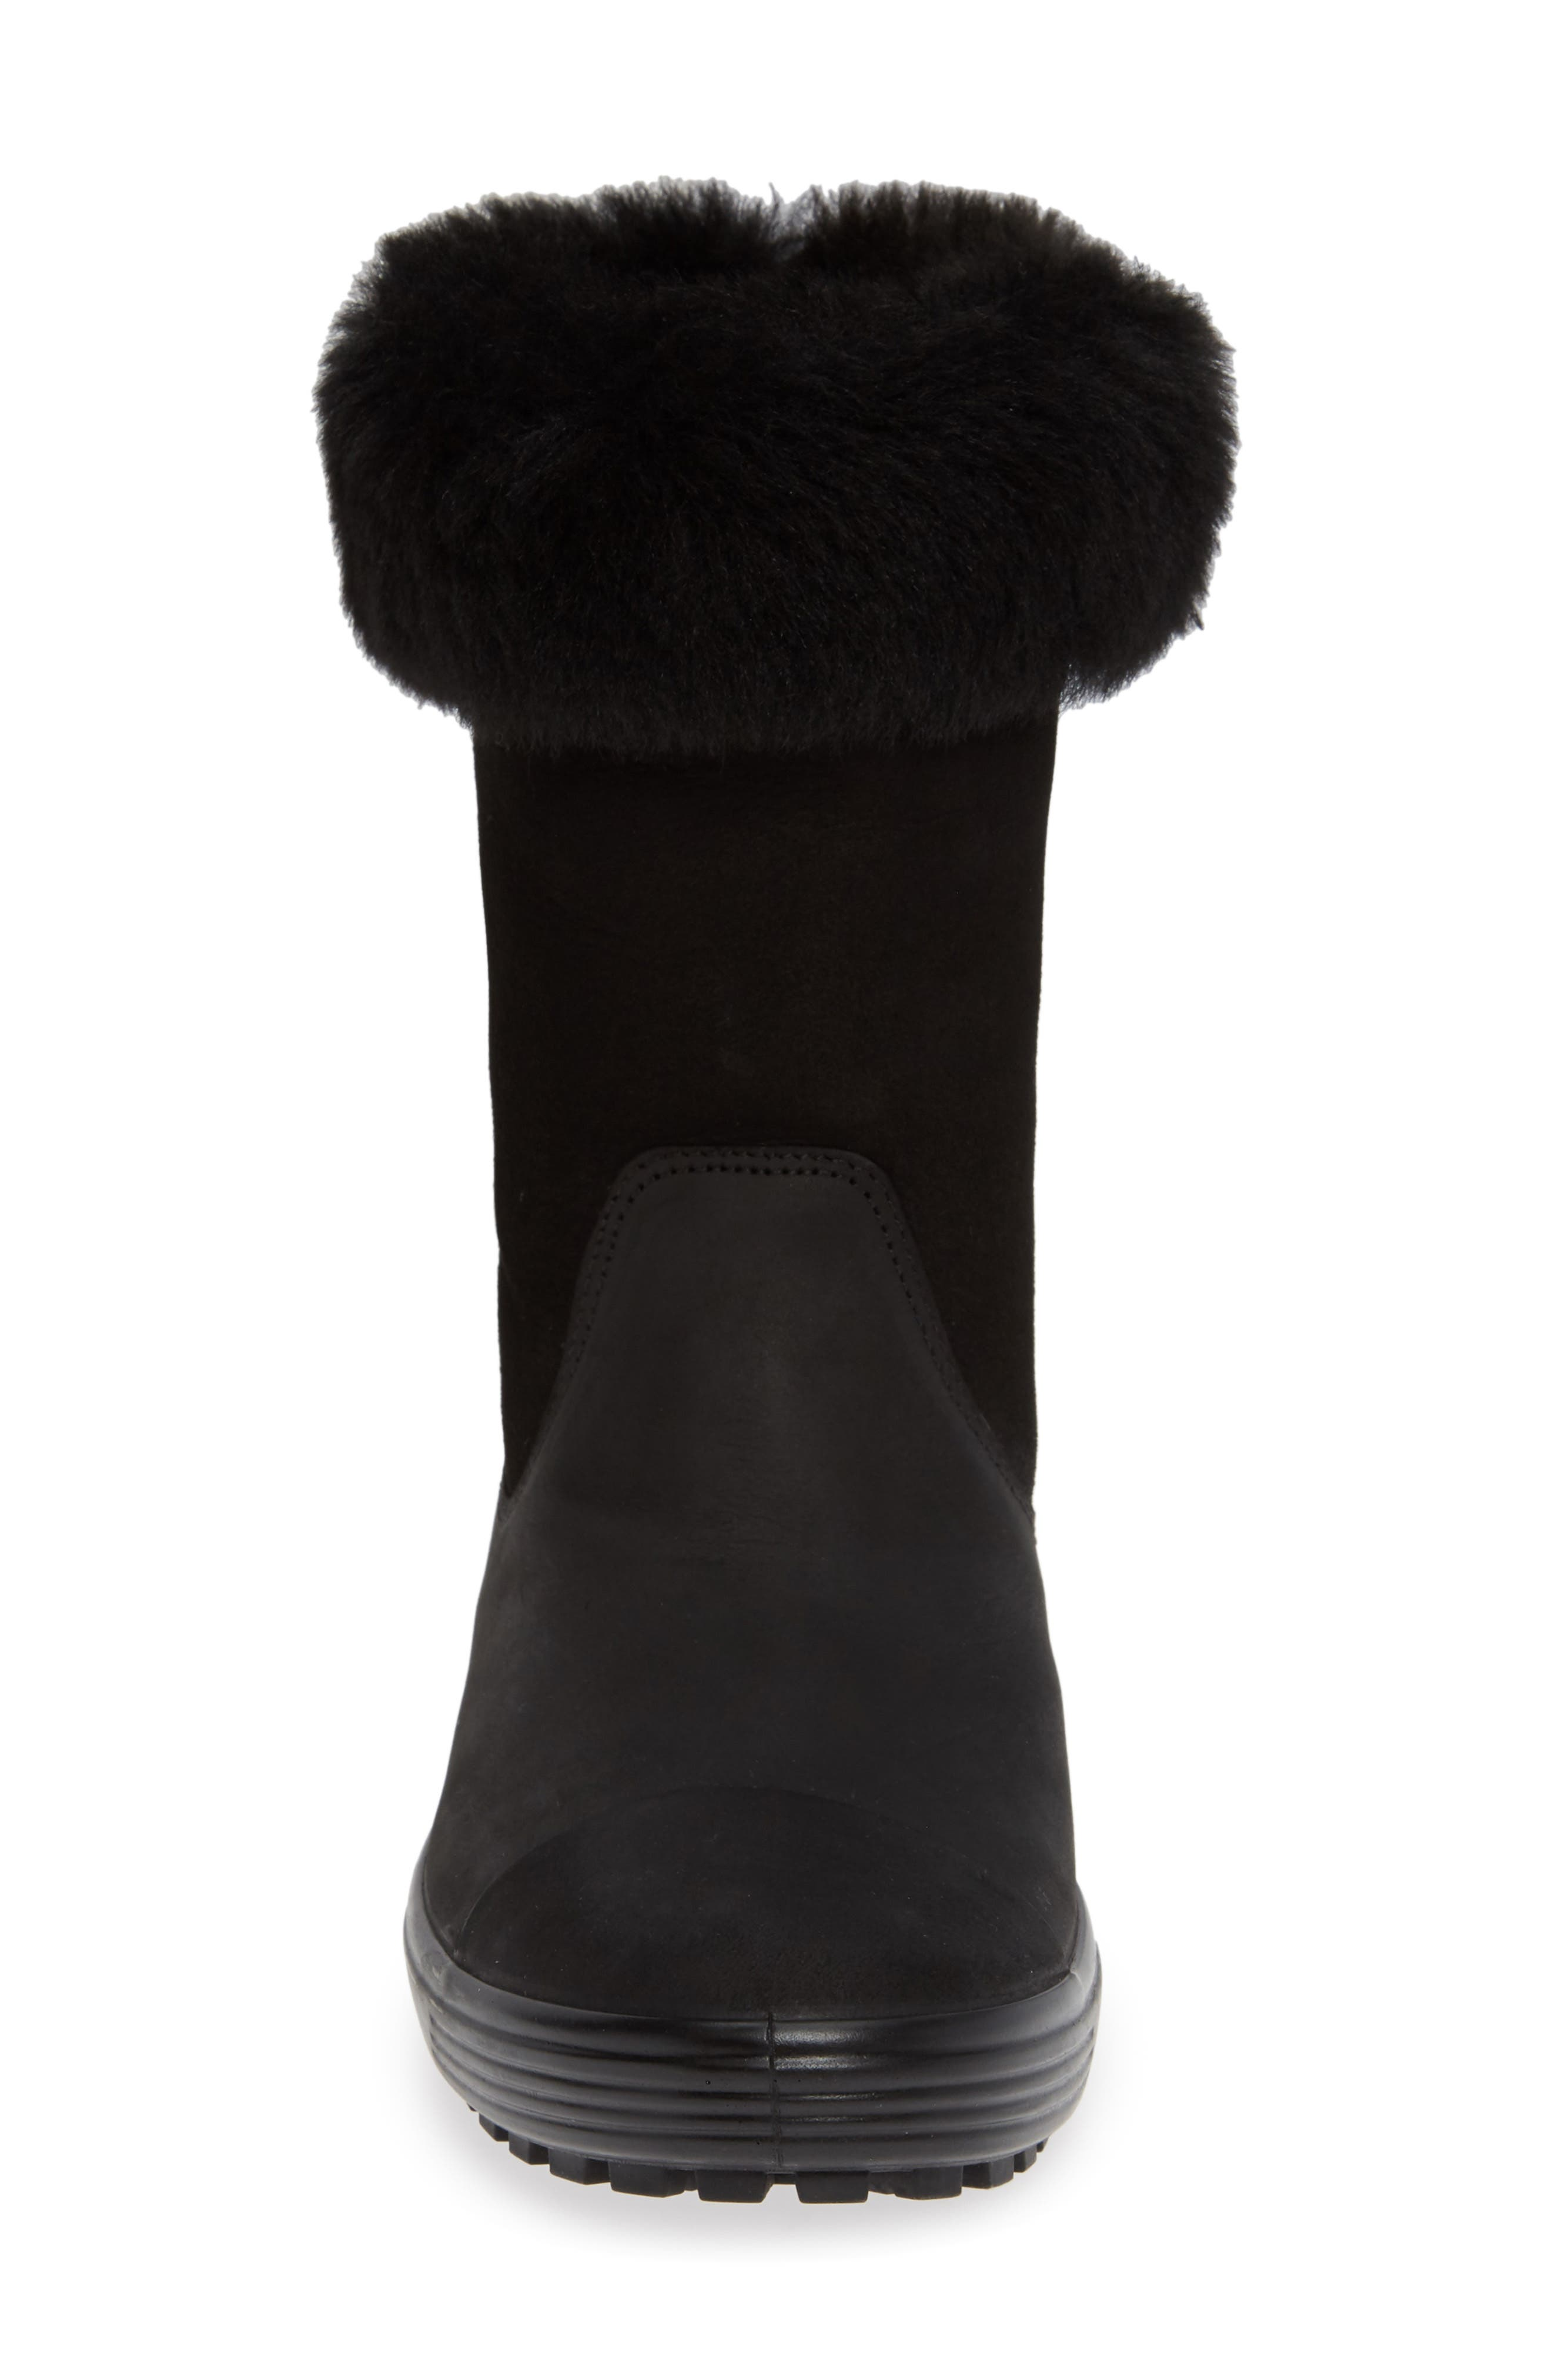 Soft 7 Tred Waterproof Genuine Shearling Lined Boot,                             Alternate thumbnail 5, color,                             BLACK NUBUCK LEATHER